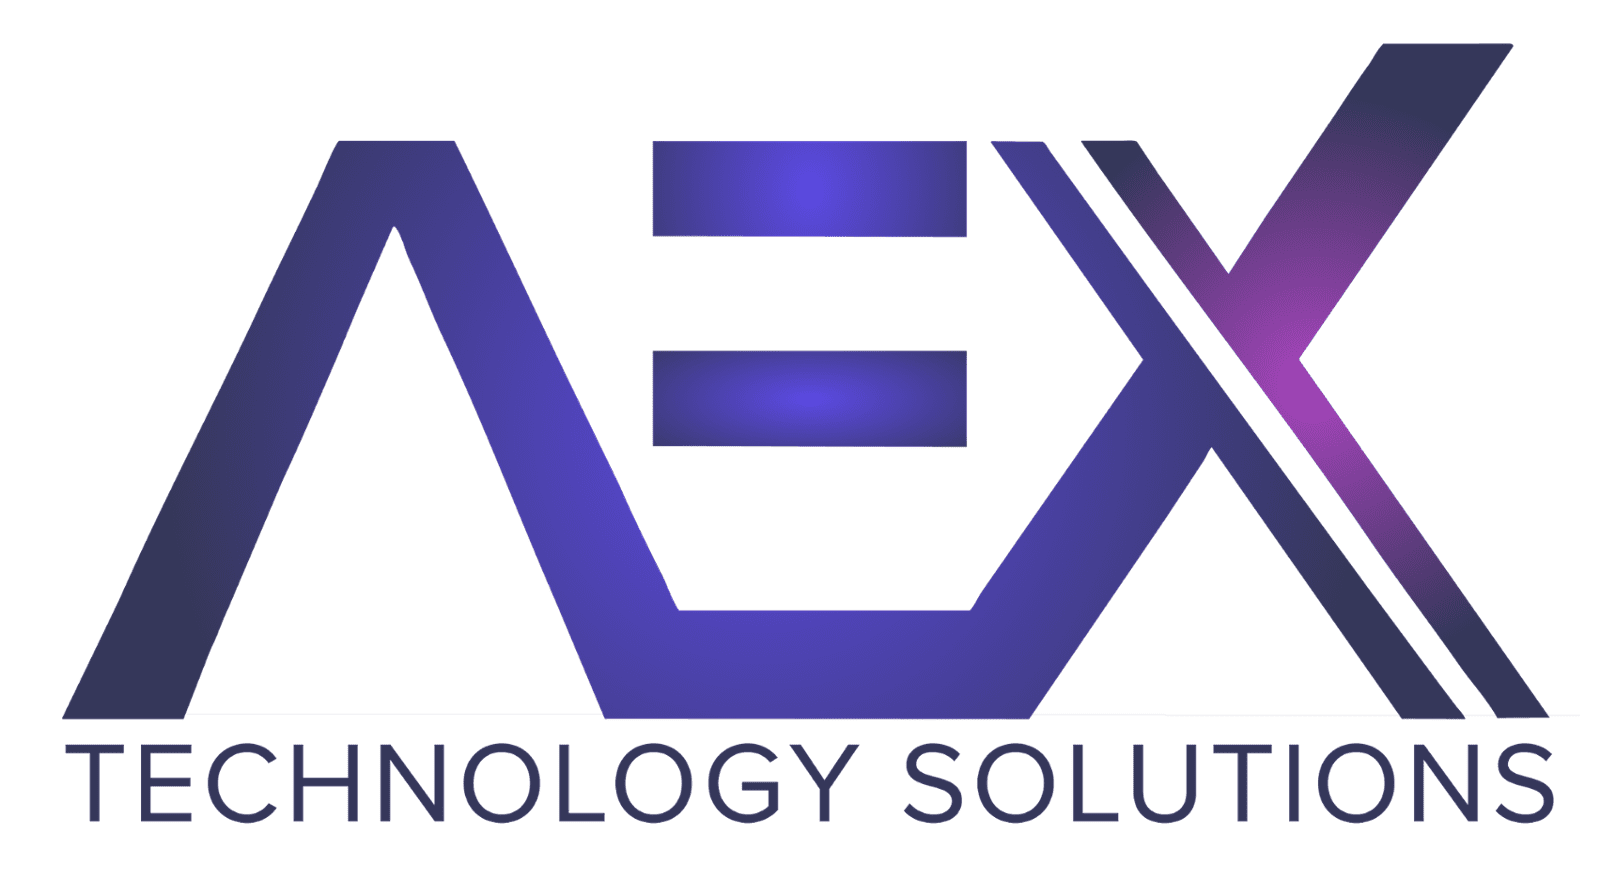 AEX Technology Solutions